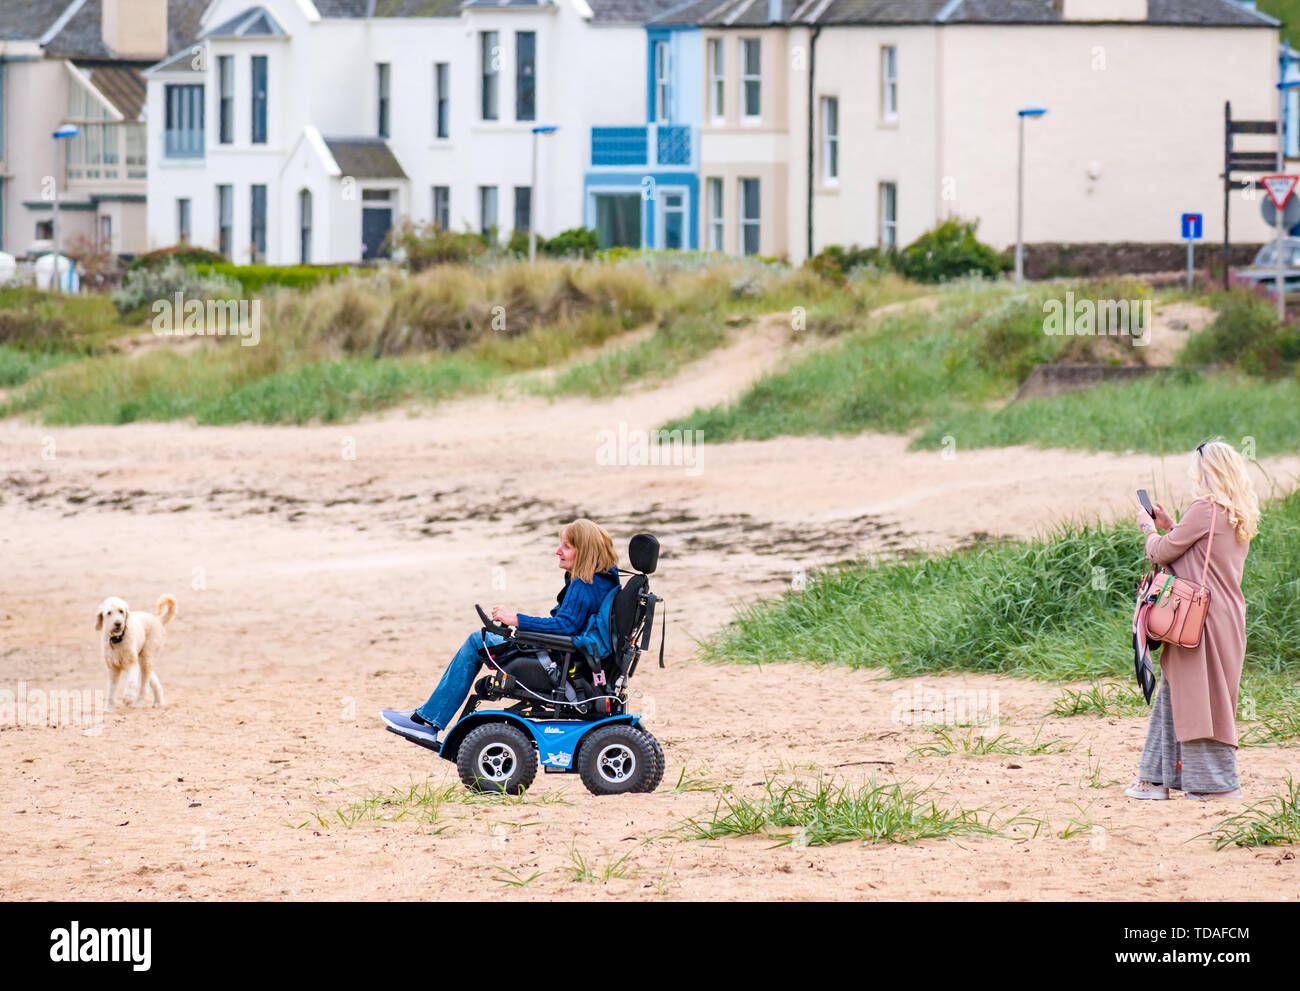 North Berwick, East Lothian, Scotland, United Kingdom, 14th June 2019. UK Weather: After East Lothian suffered heavy rain the last few days, the weather has brightened, and people enjoy the outdoor pursuits in the seaside town. A woman enjoys trying out an electric wheelchair on the beach at Milsey Bay. Credit: Sally Anderson/Alamy Live News - Stock Image